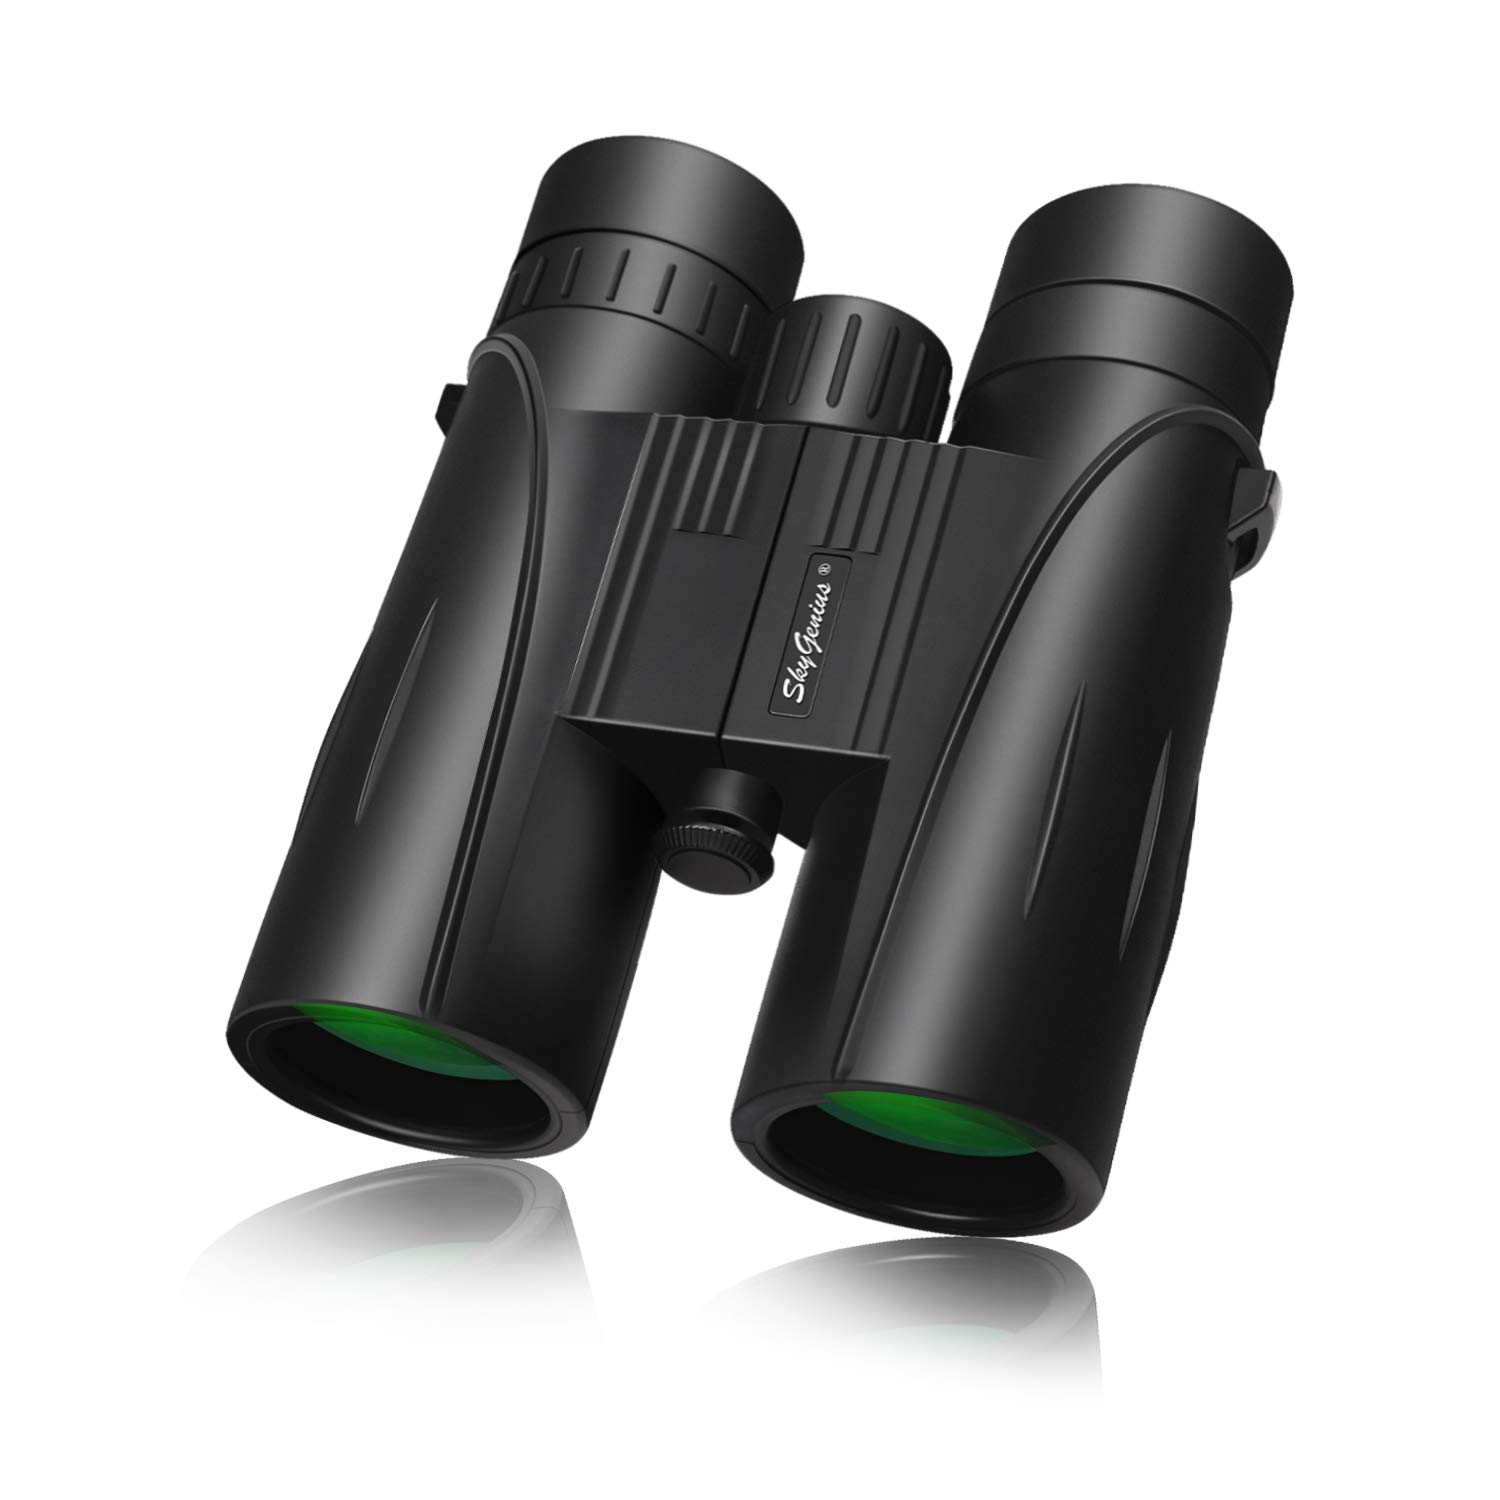 8×42 Full-size Binoculars For Adults BAK4,Green Lens , Durable HD Clarity Binoculars For Bird Watching Sightseeing Hunting Wildlife Watching Sporting Events, W Carrying Case Strap Lens Cap 1.68 Pound